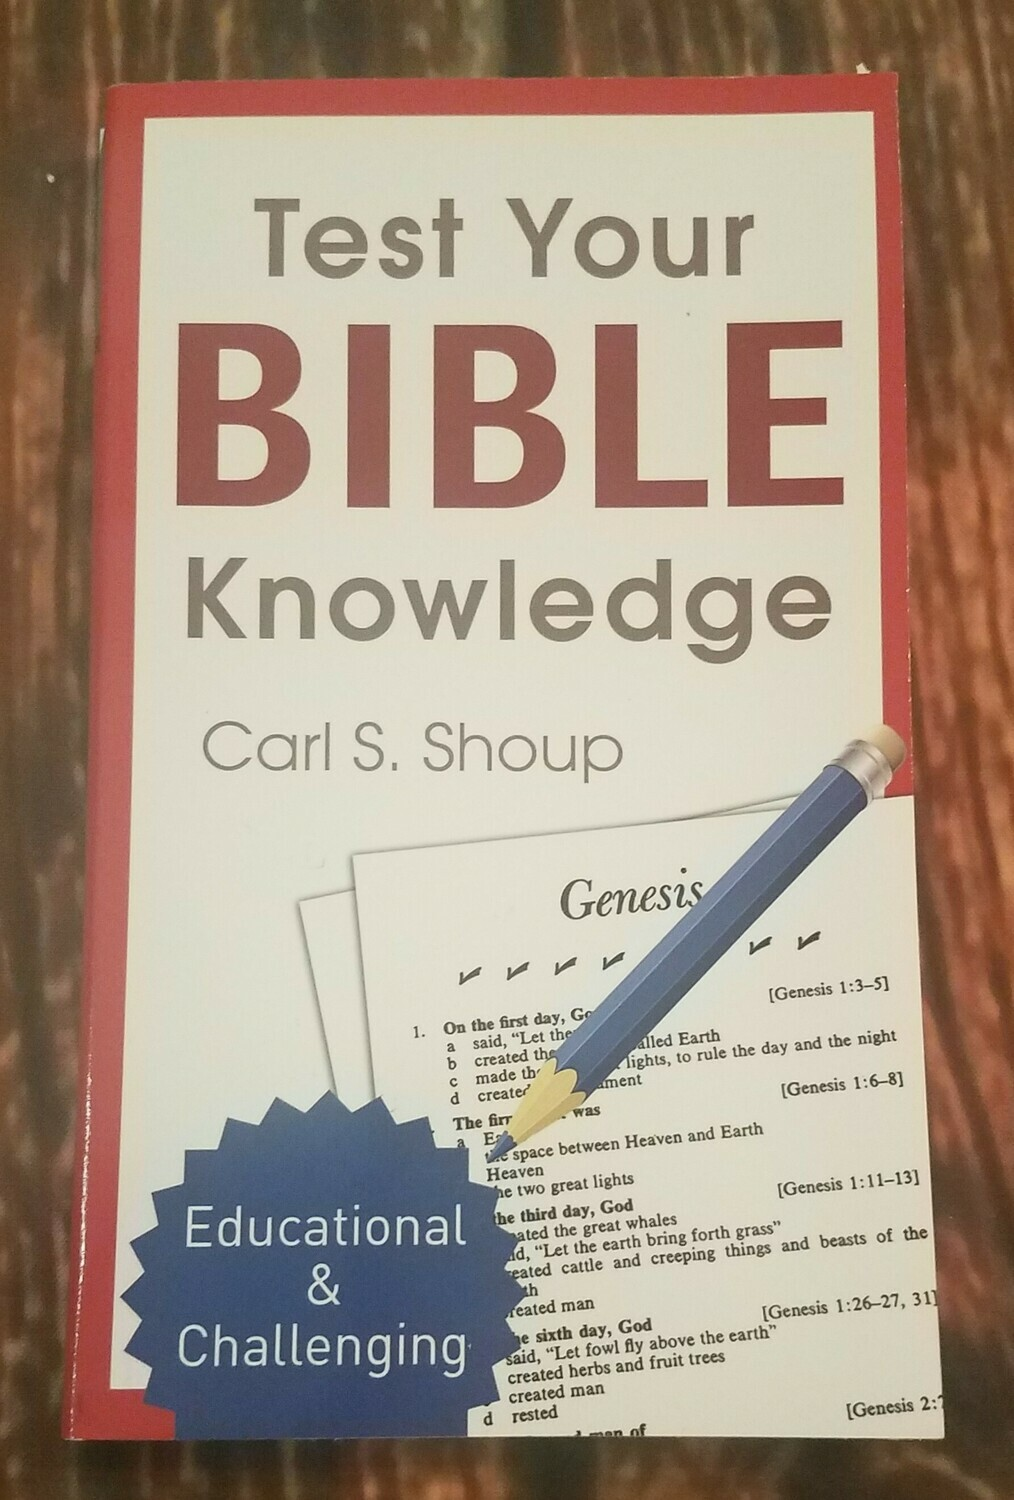 Test Your Bible Knowledge by Carl S. Shoup